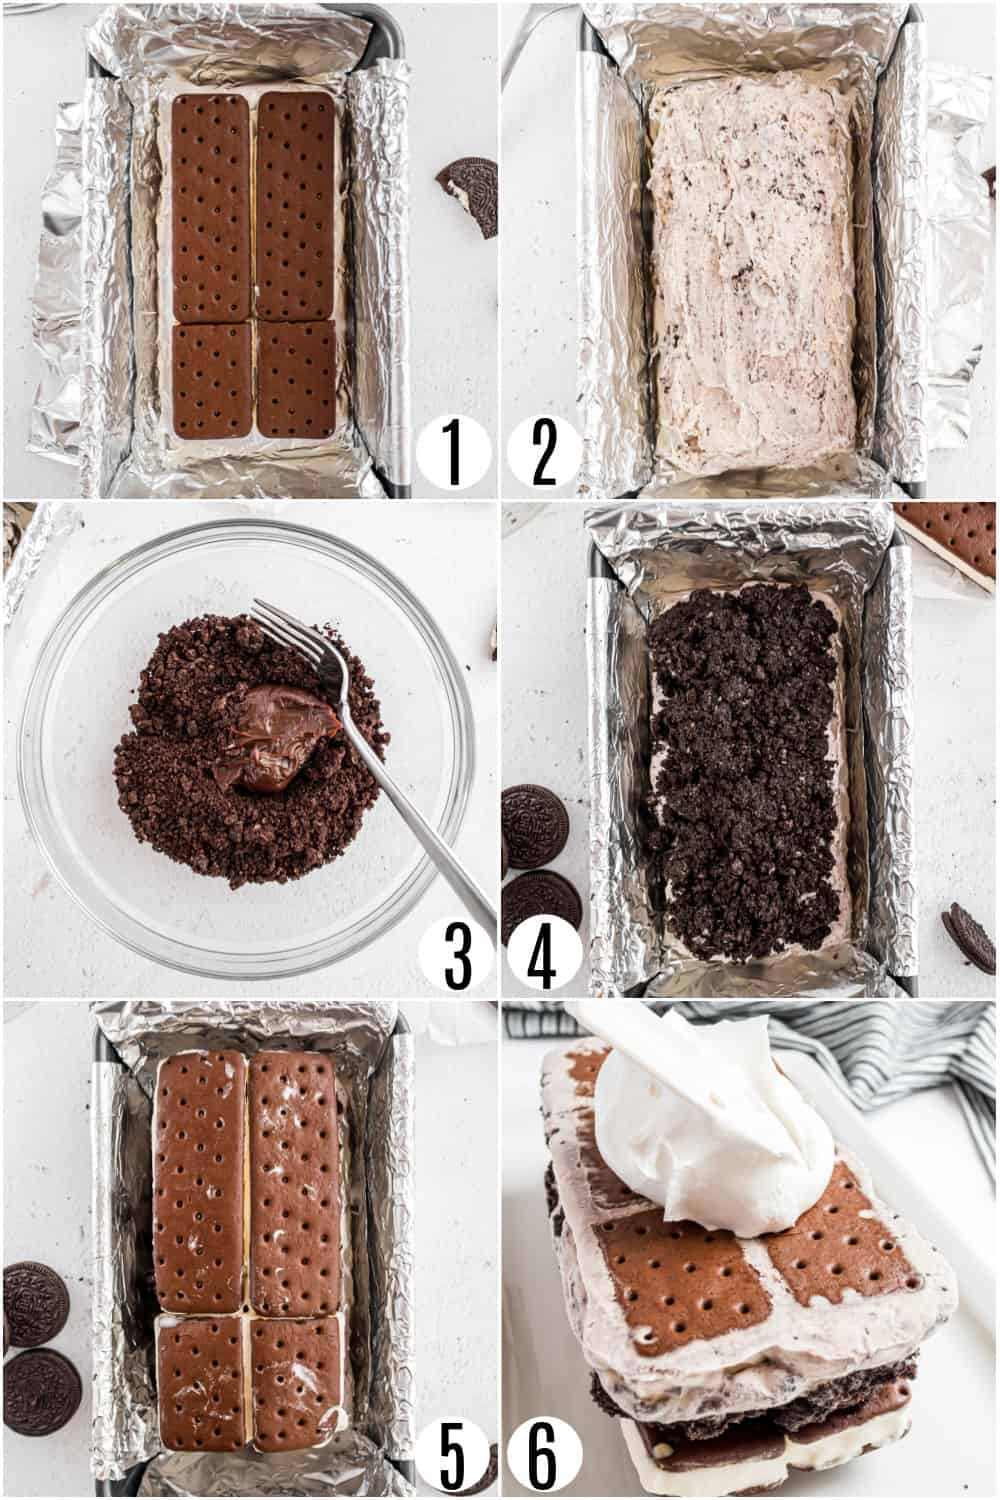 Step by step photos showing how to make oreo ice cream cake.